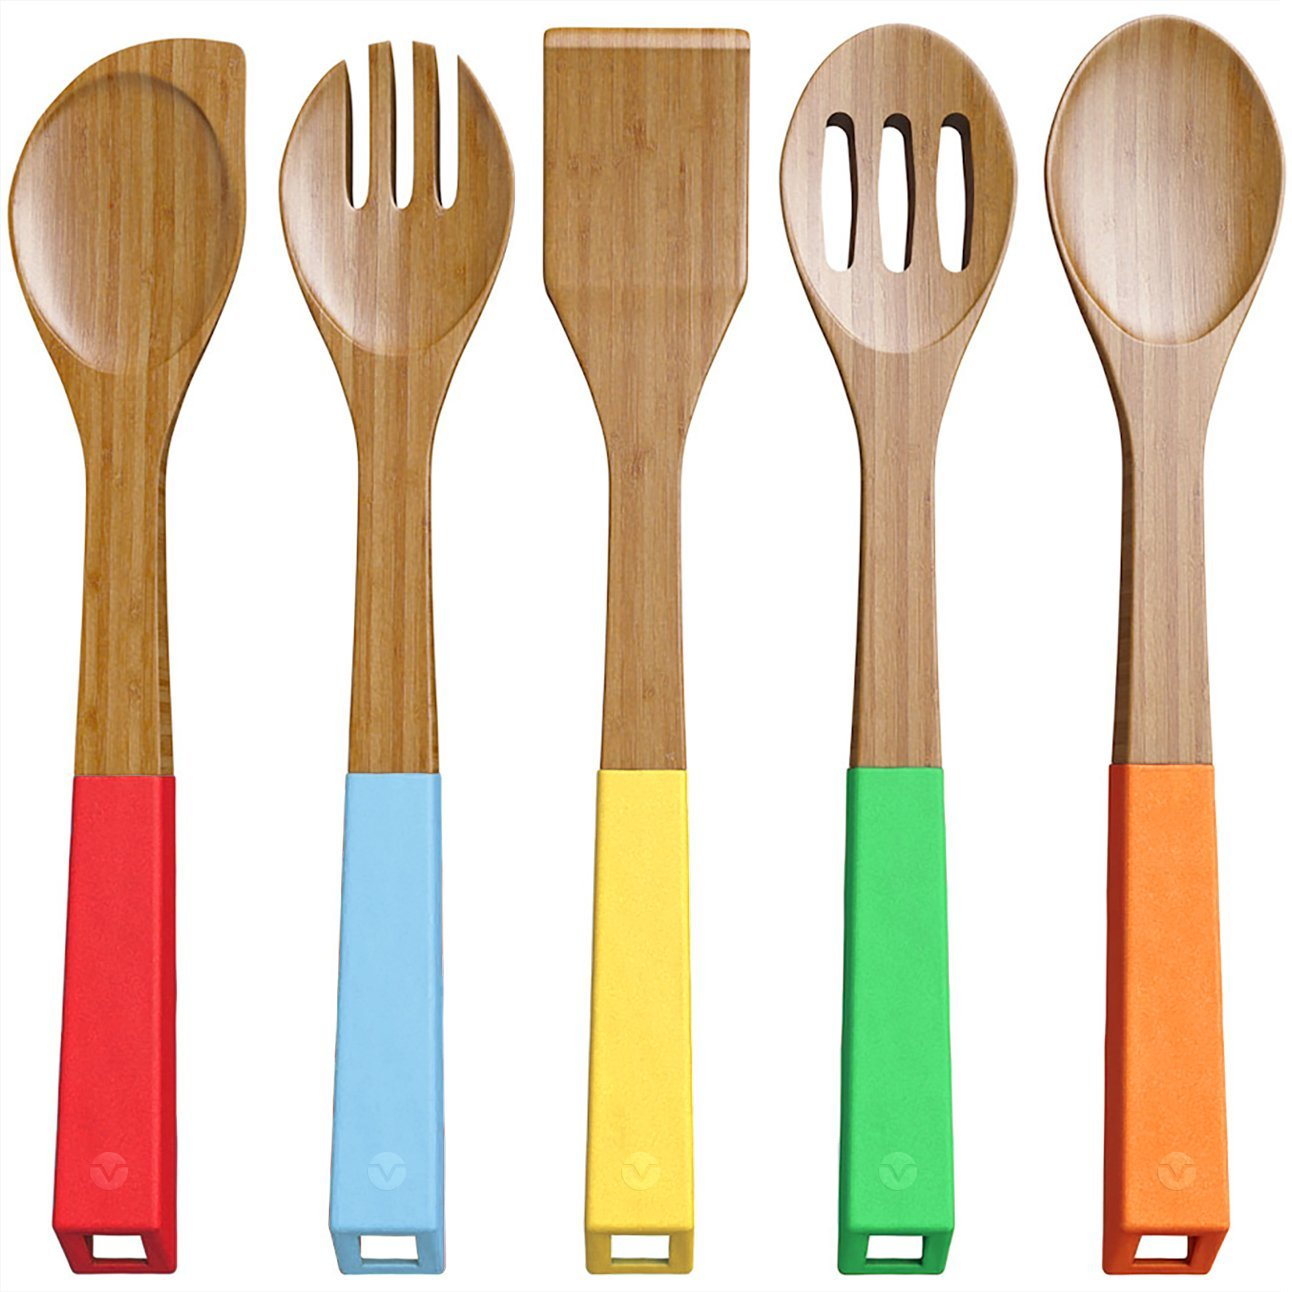 Wood Kitchen Utensil Set: Vremi 5 Piece Bamboo Spoons Cooking Utensils